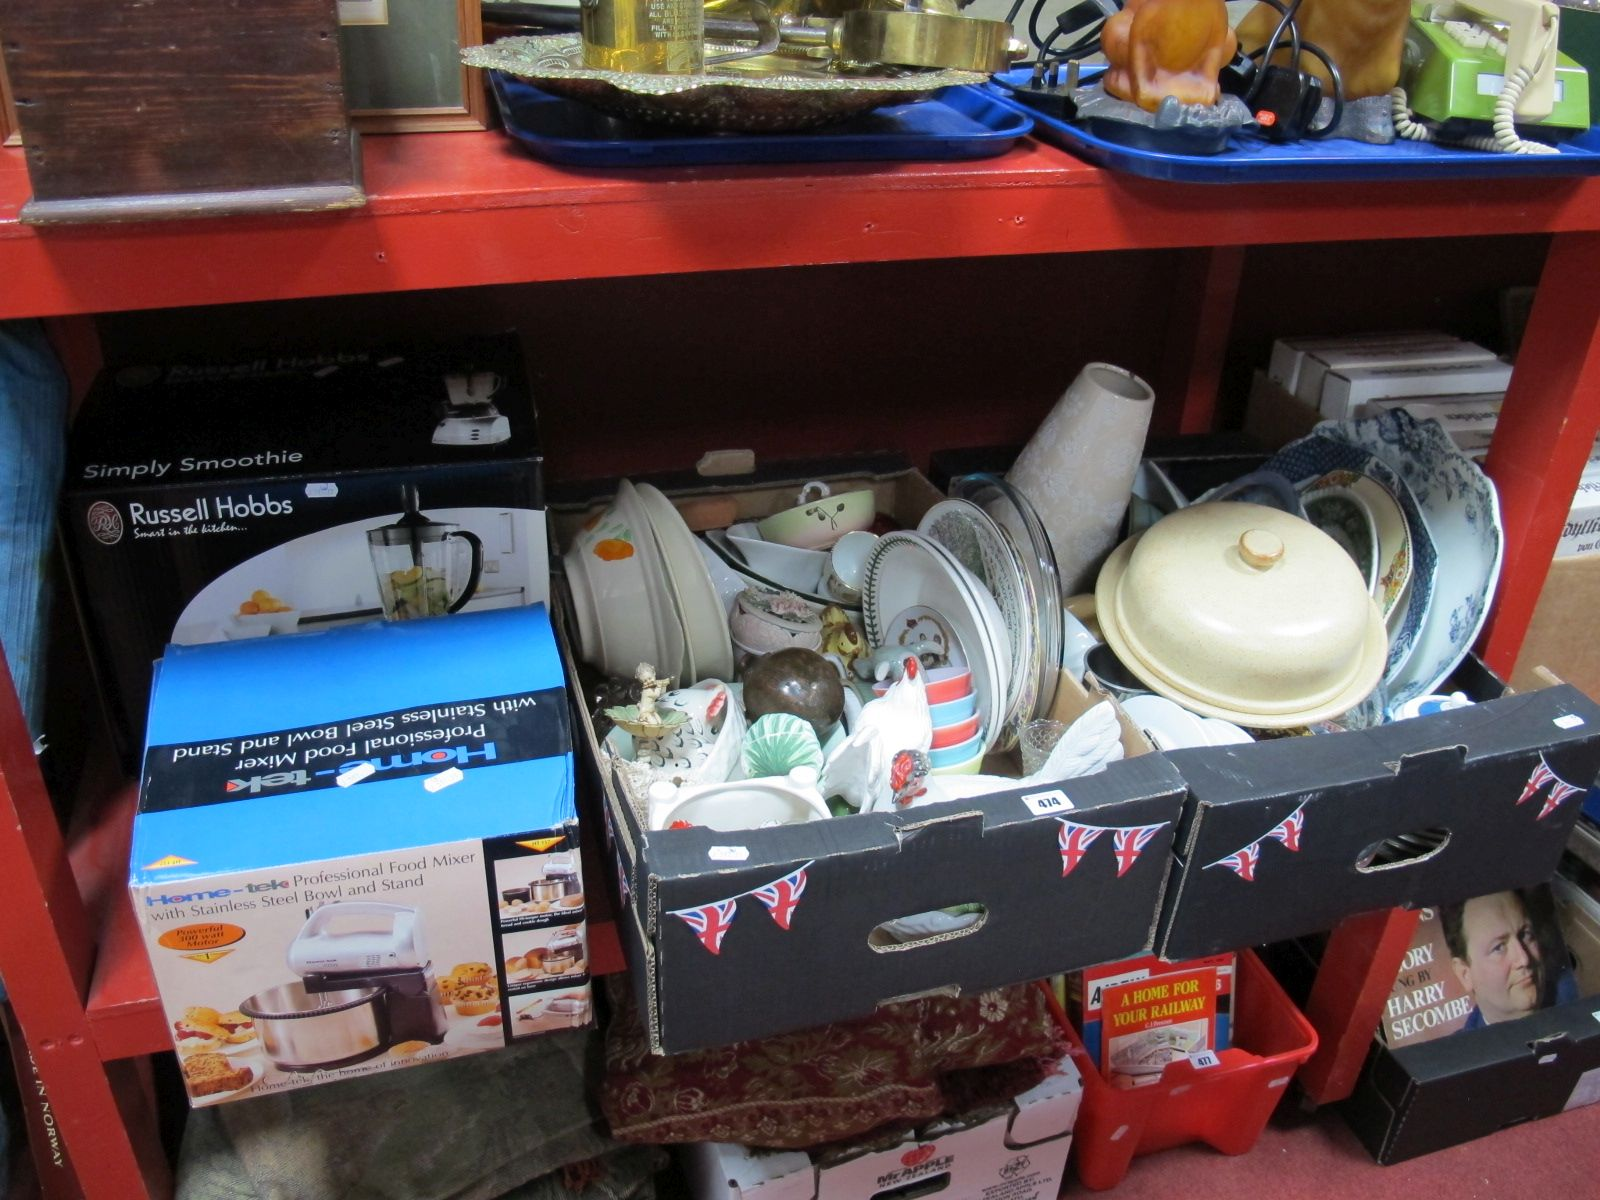 Lot 474 - Meat Plates, egg crock, cheese dish, Portmeirion and other pottery :- Two Boxes plus Food Mixer,